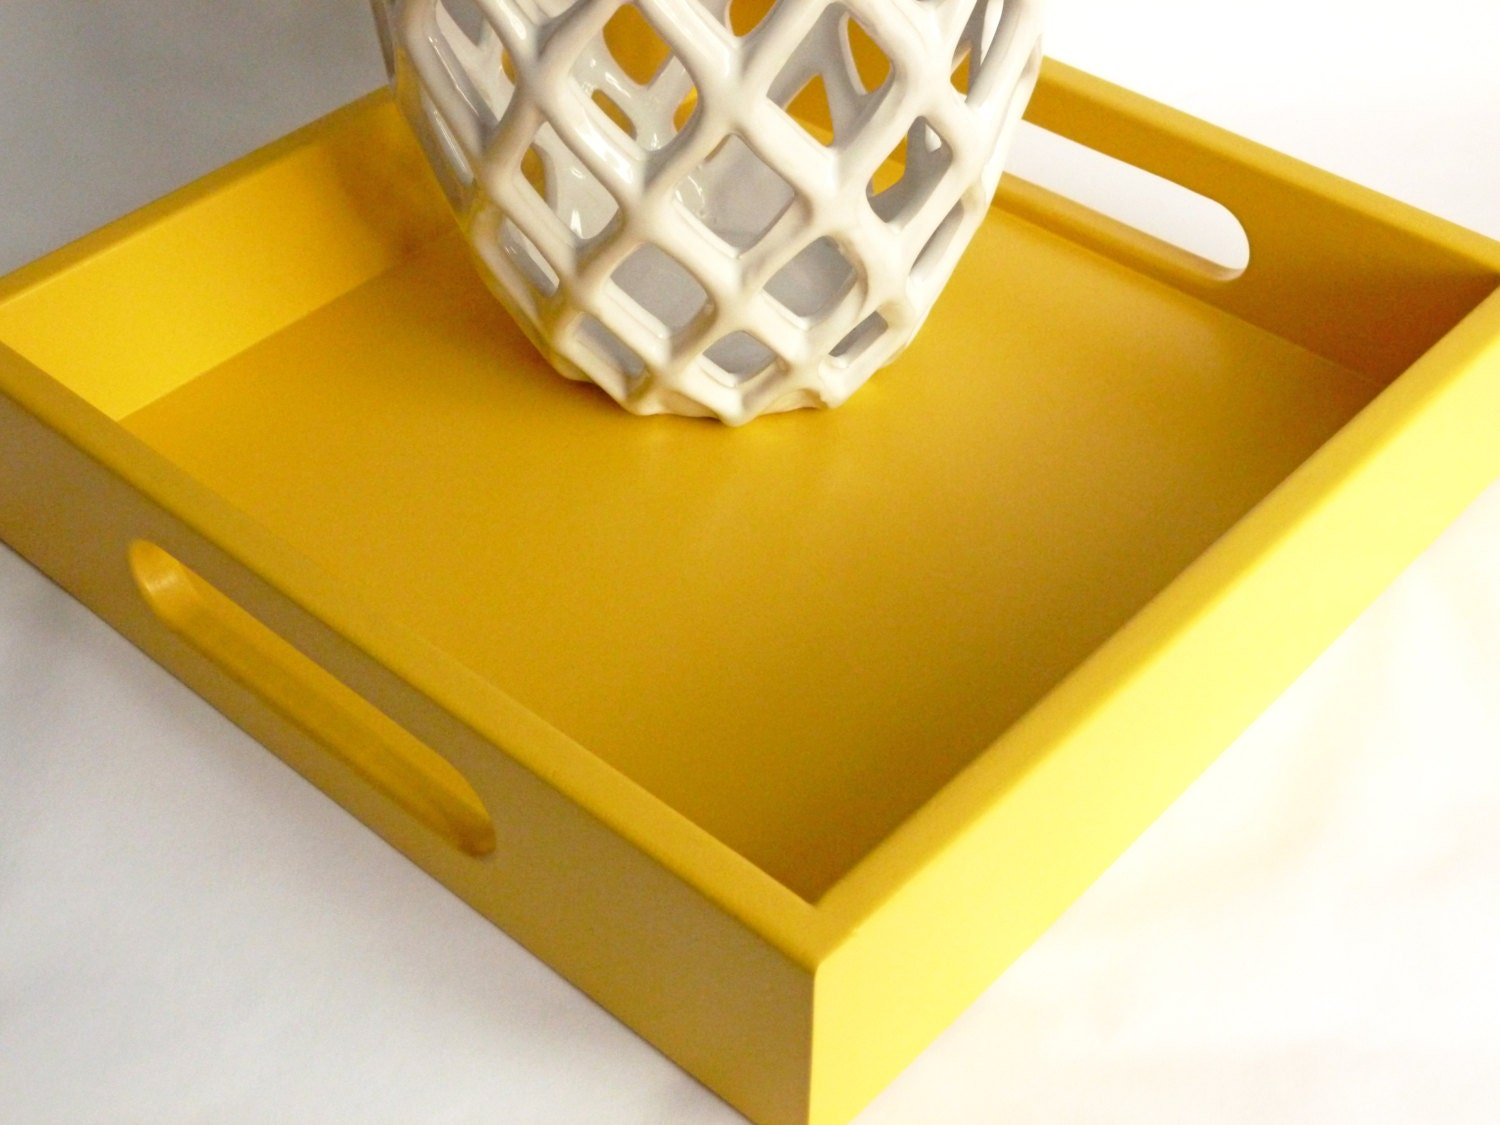 Sunny Yellow 12 X 12 Painted Wood Square Serving Tray Yellow